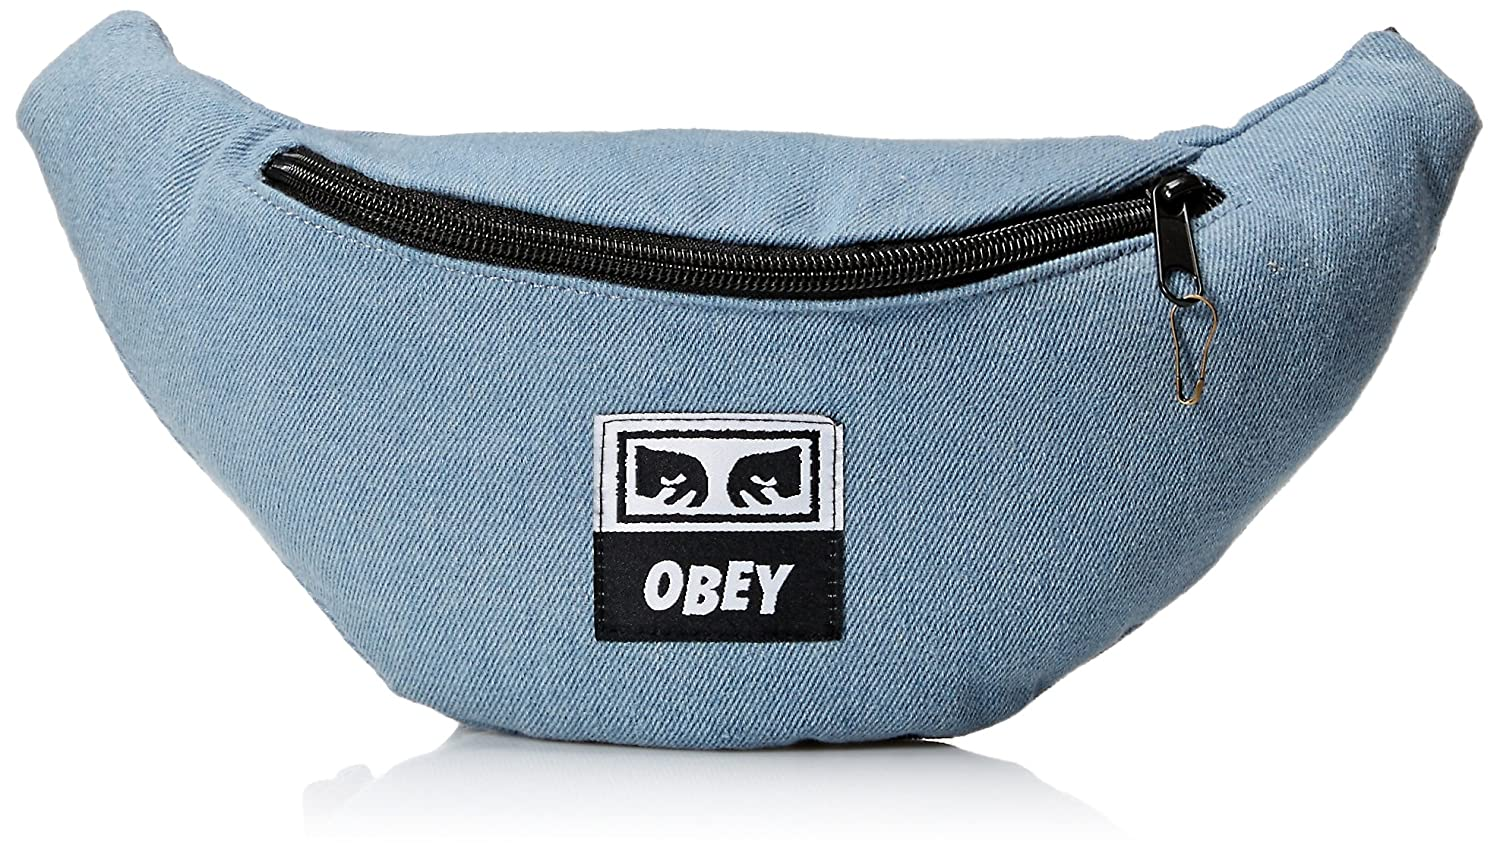 Amazon.com: Obey Men s desperdicio de bolso de cadera ...